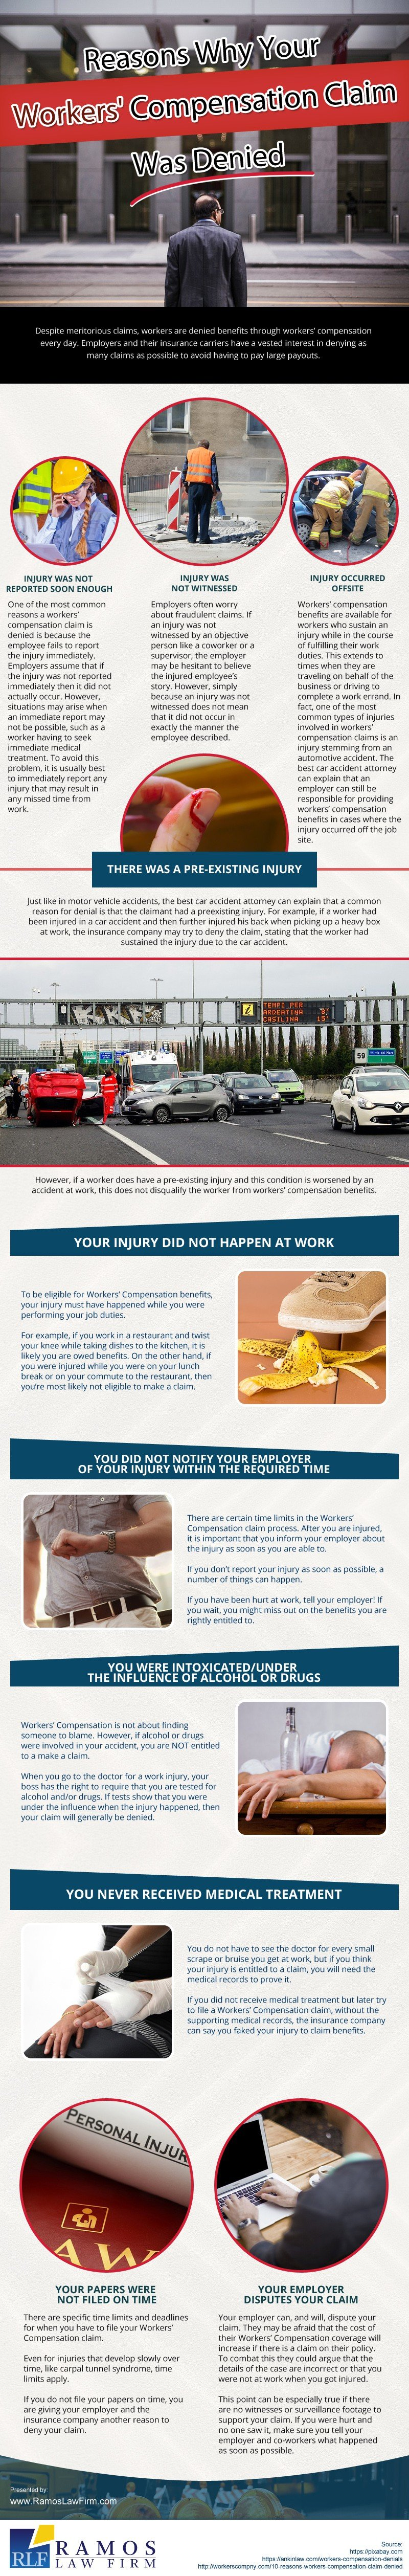 Reasons Why Your Workers' Compensation Claim Was Denied